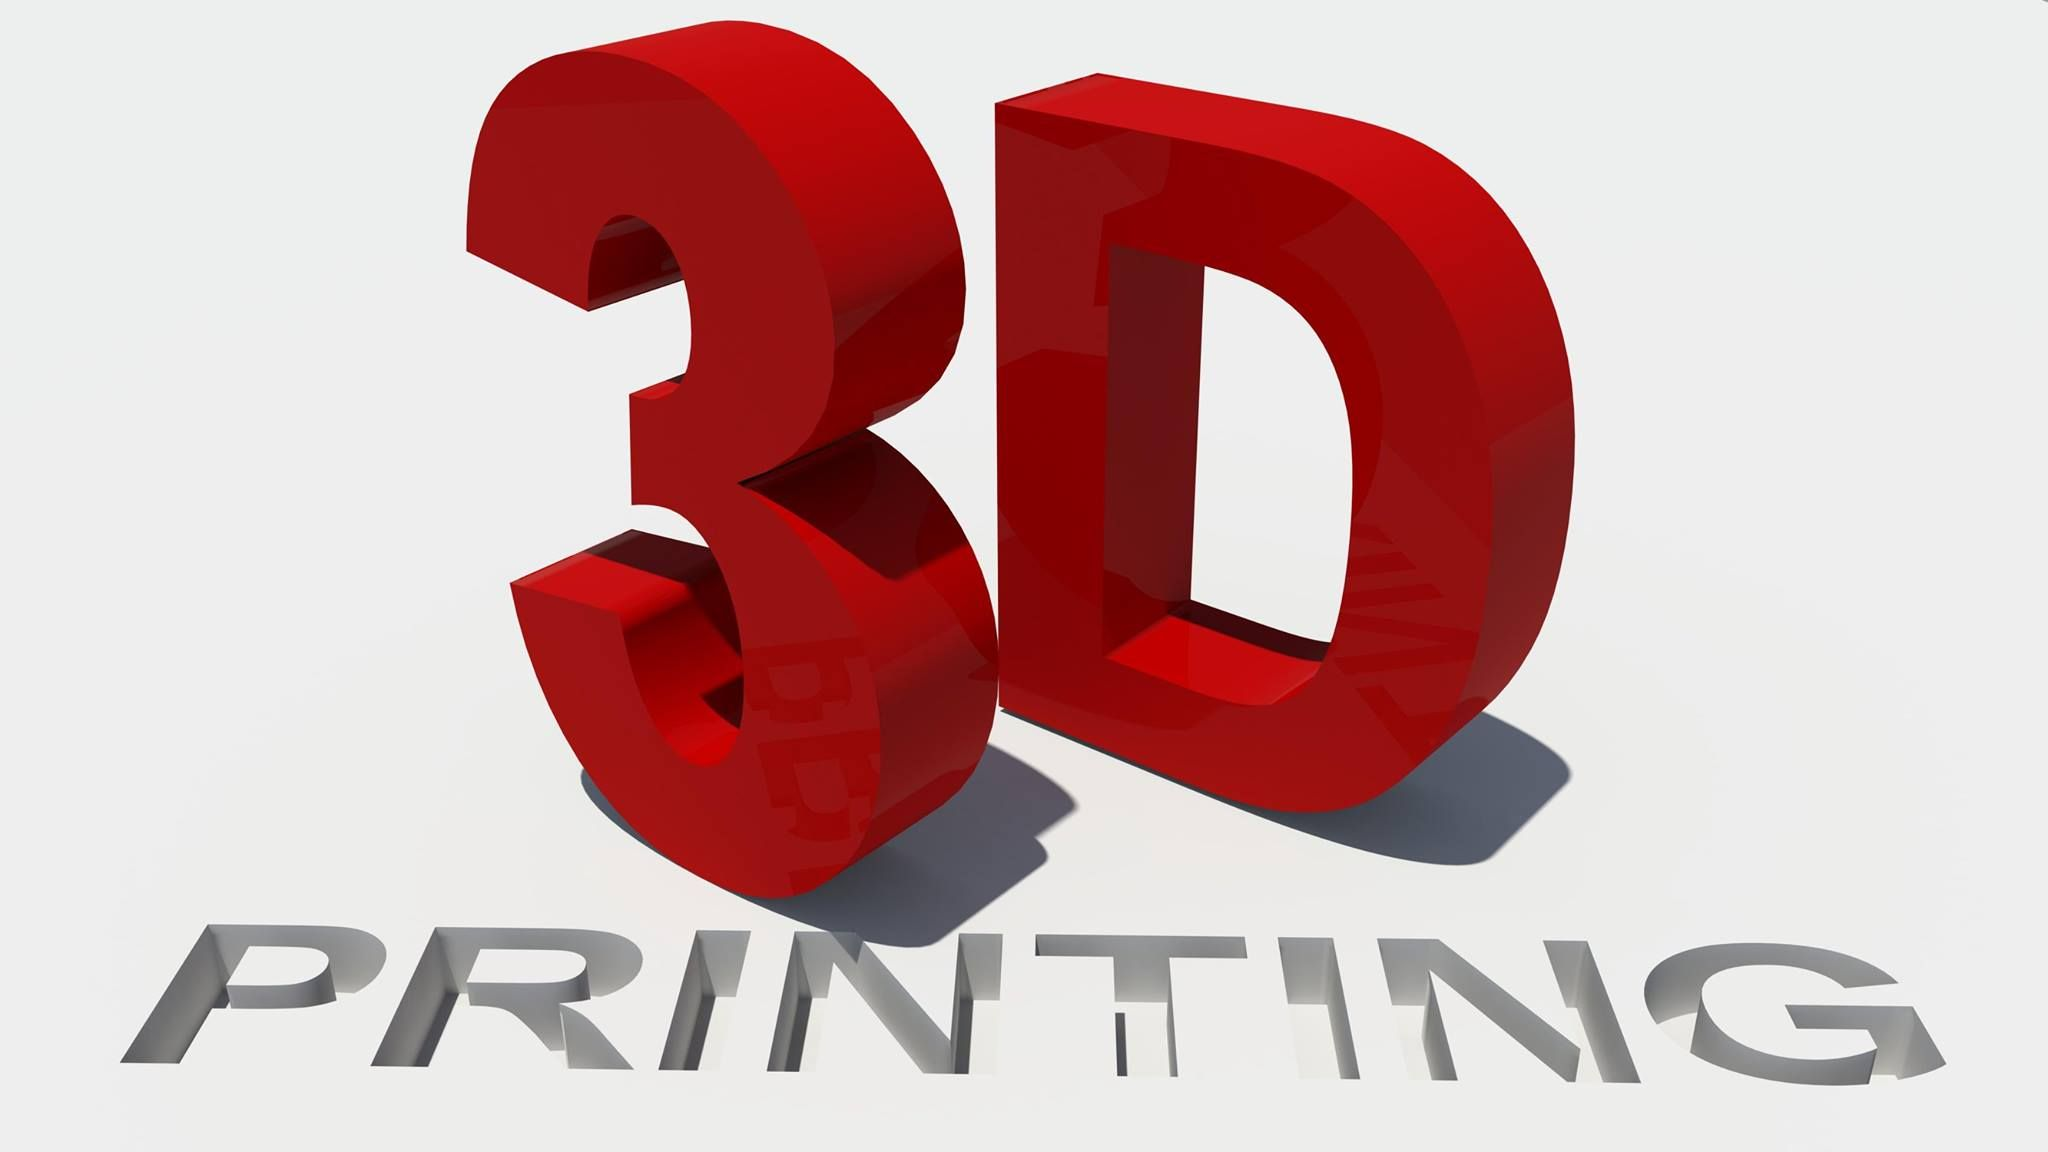 Contact MS Dallas for your 3D Printing interests!